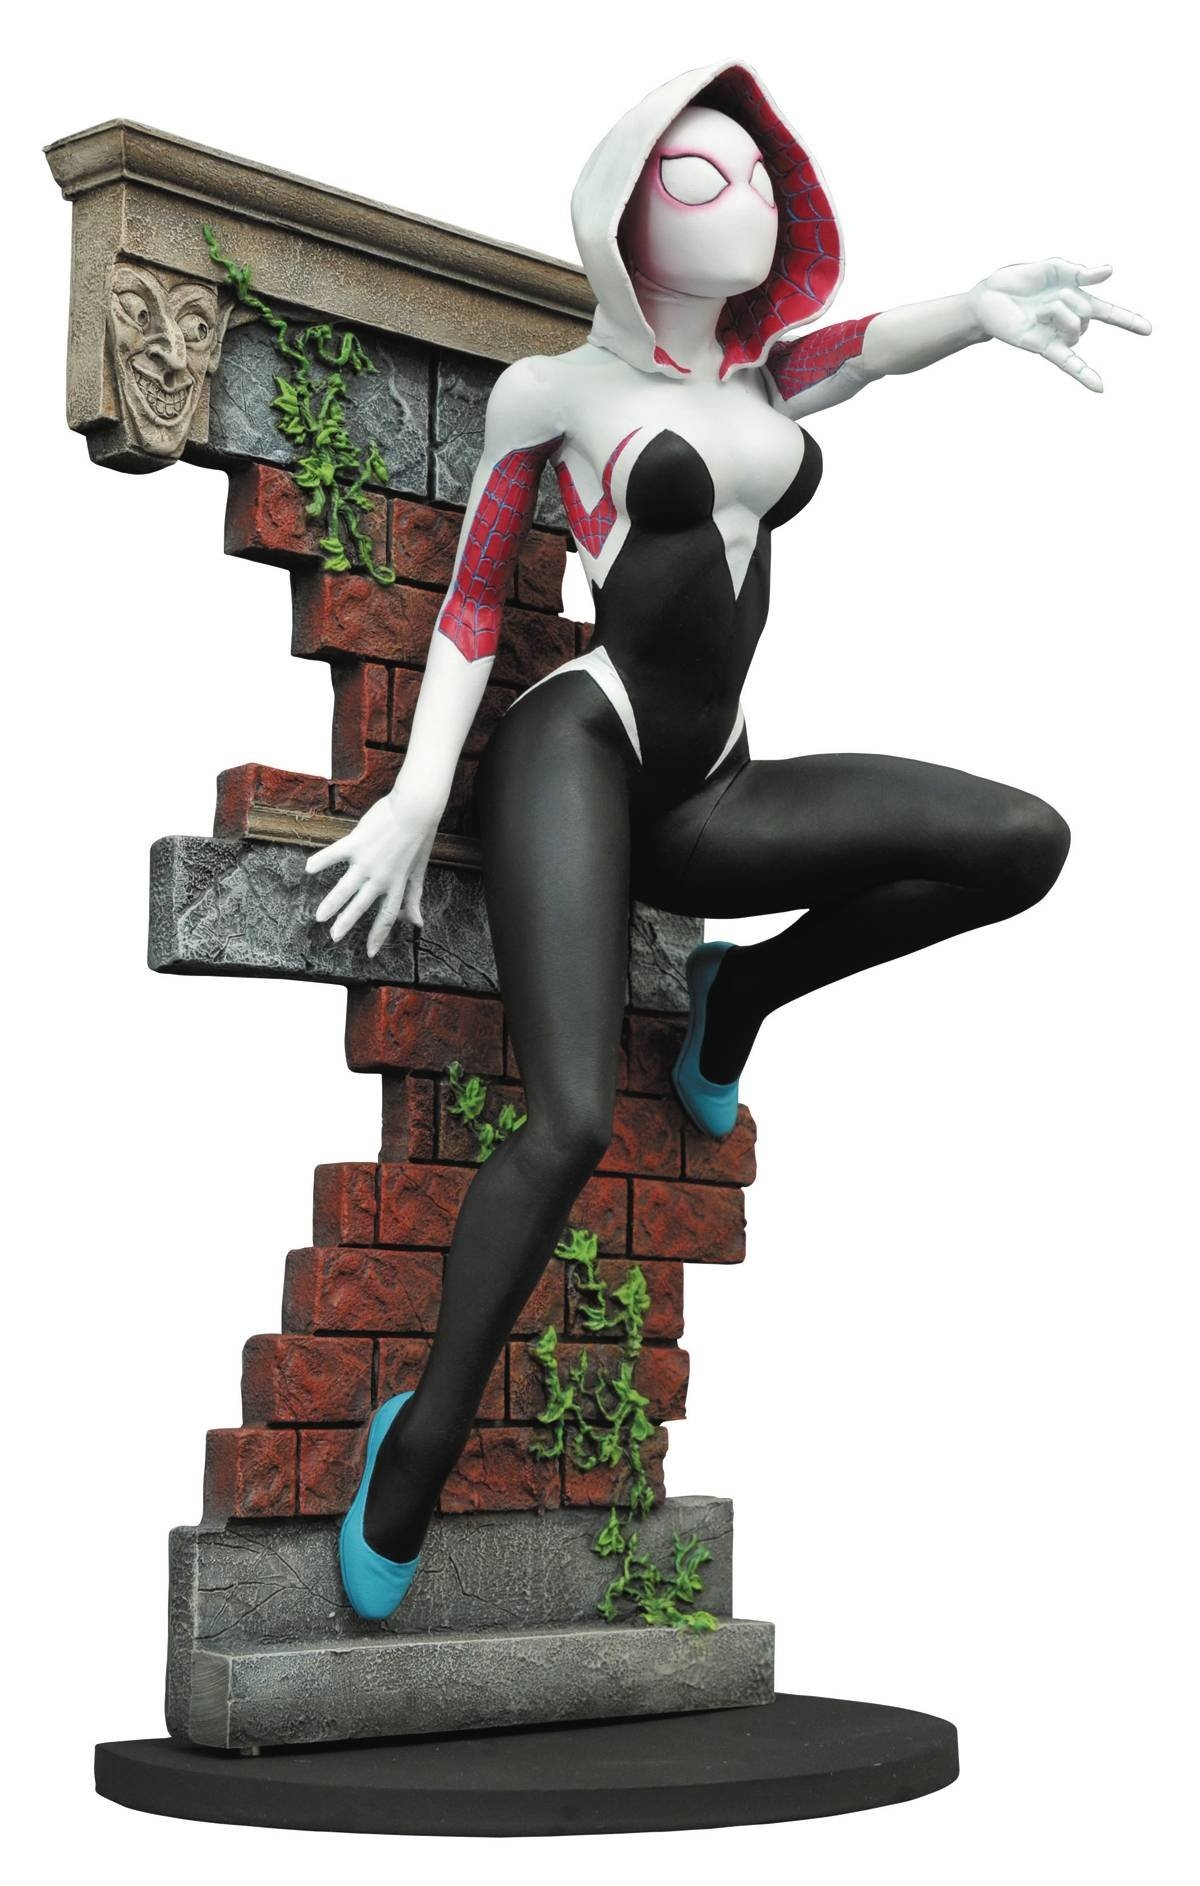 https://0901.nccdn.net/4_2/000/000/018/5fa/MARVEL-GALLERY-SPIDER-GWEN-PVC-FIG-1200x1886.jpg